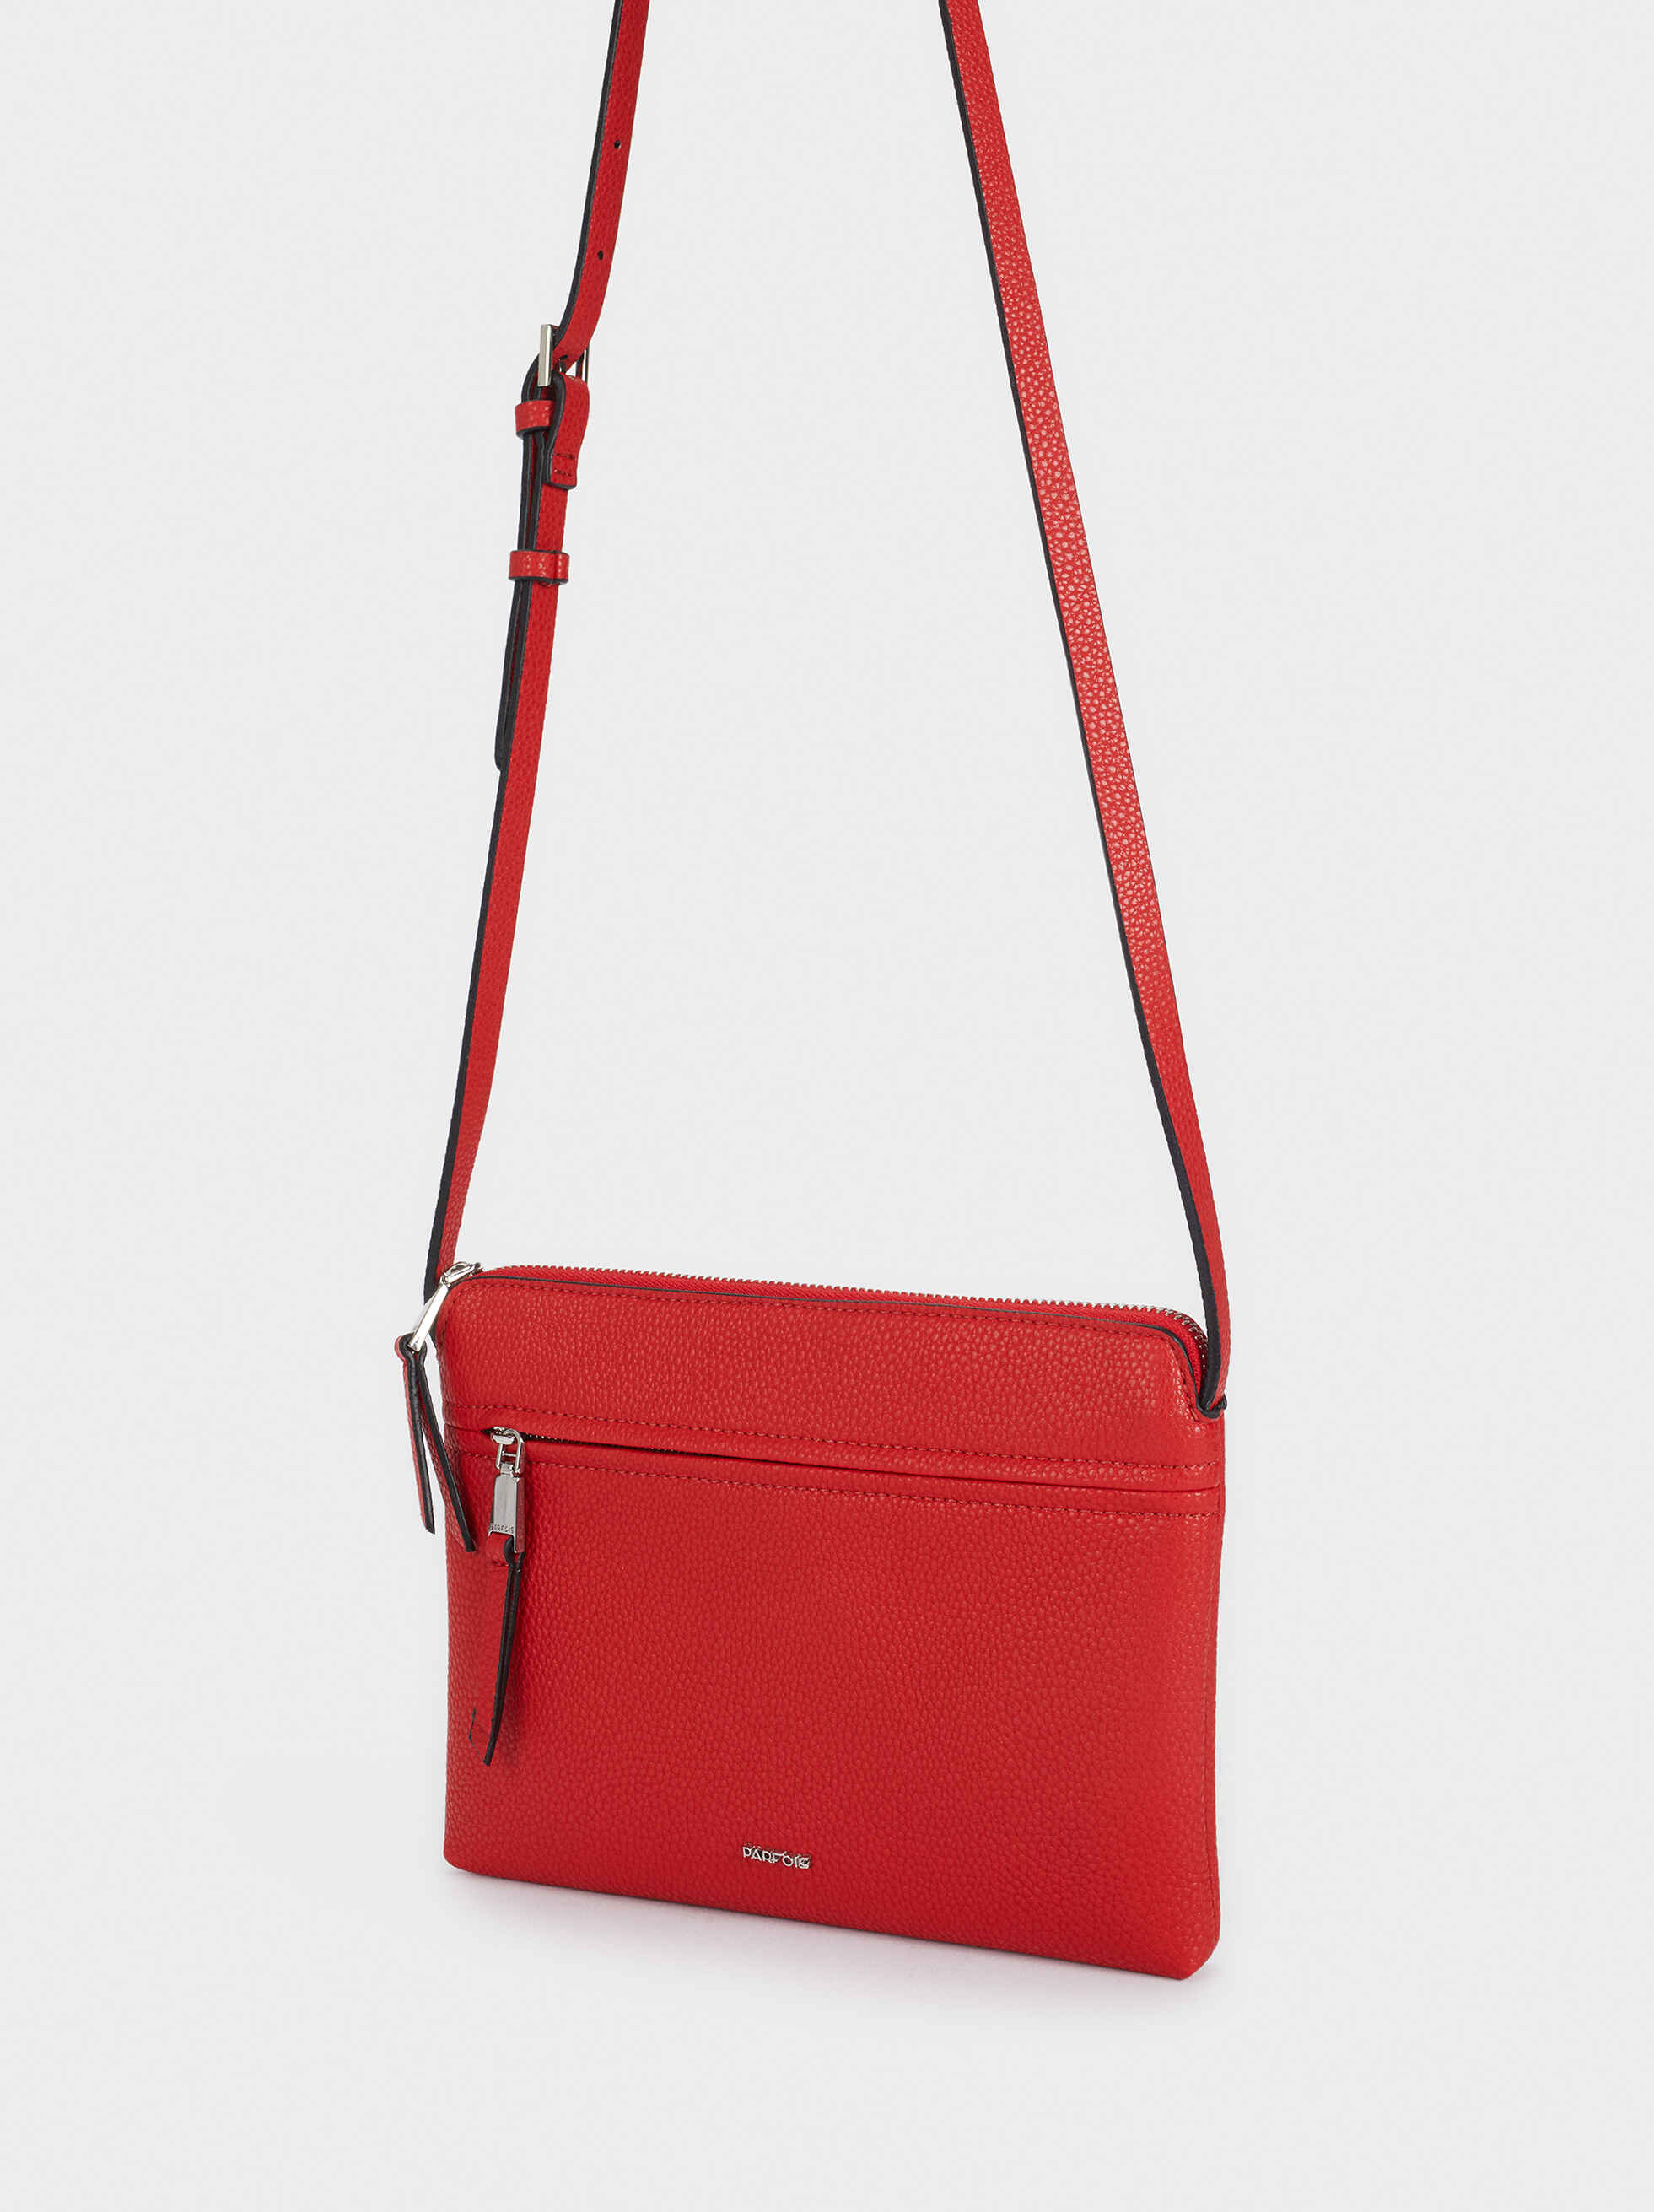 Crossbody Bag With Outer Pocket, Red, hi-res